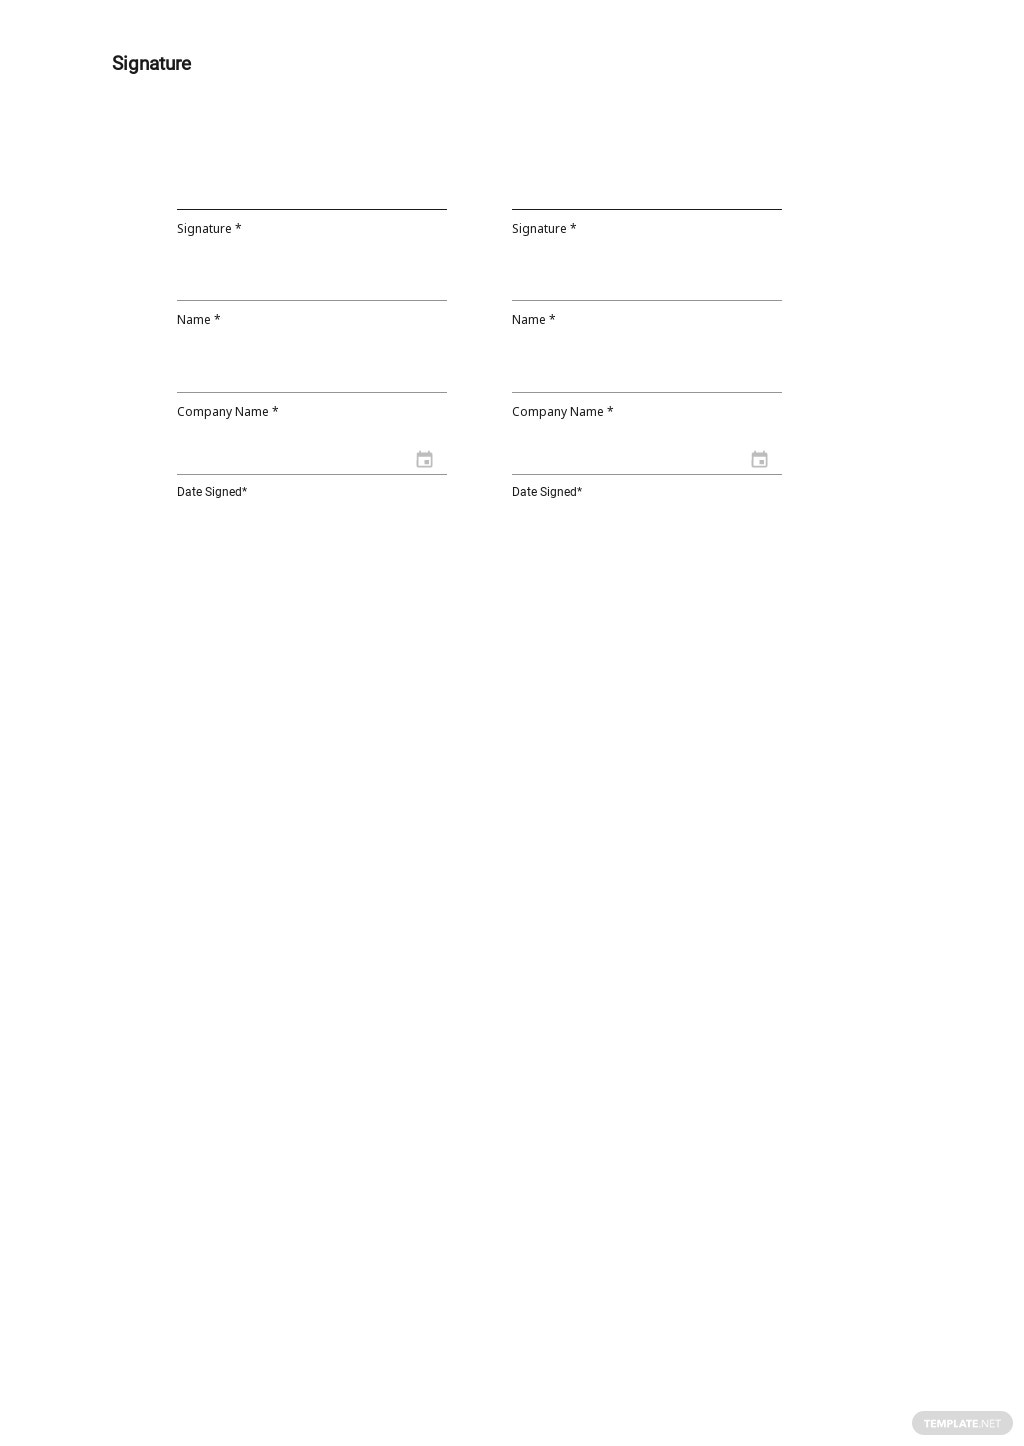 Software Distribution Agreement Long Form Template  3.jpe